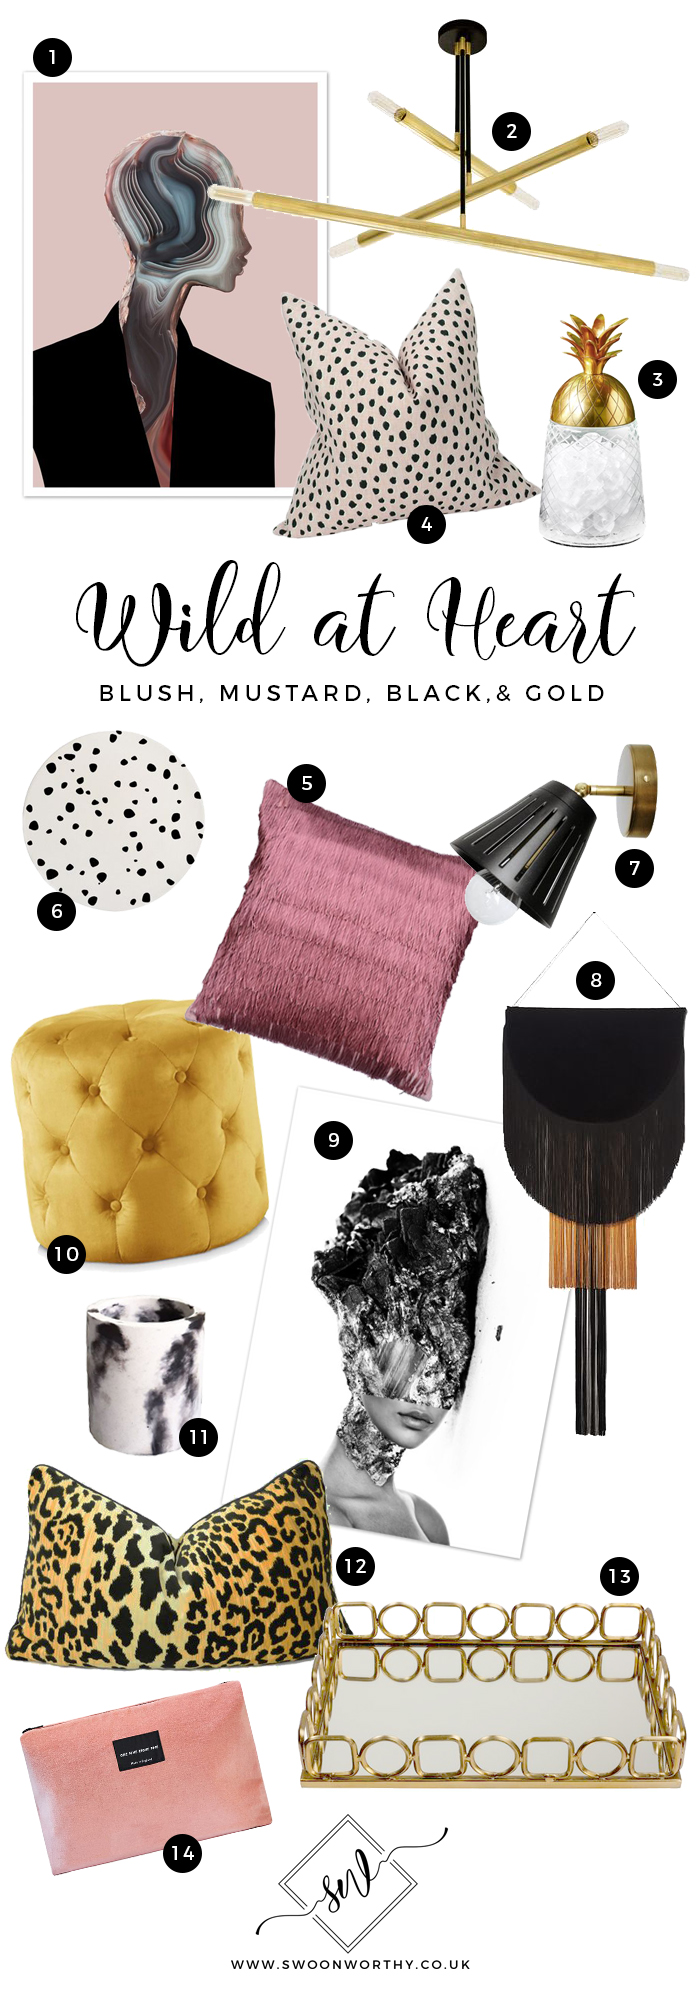 Wild at Heart Blush Black Mustard Gold Edit